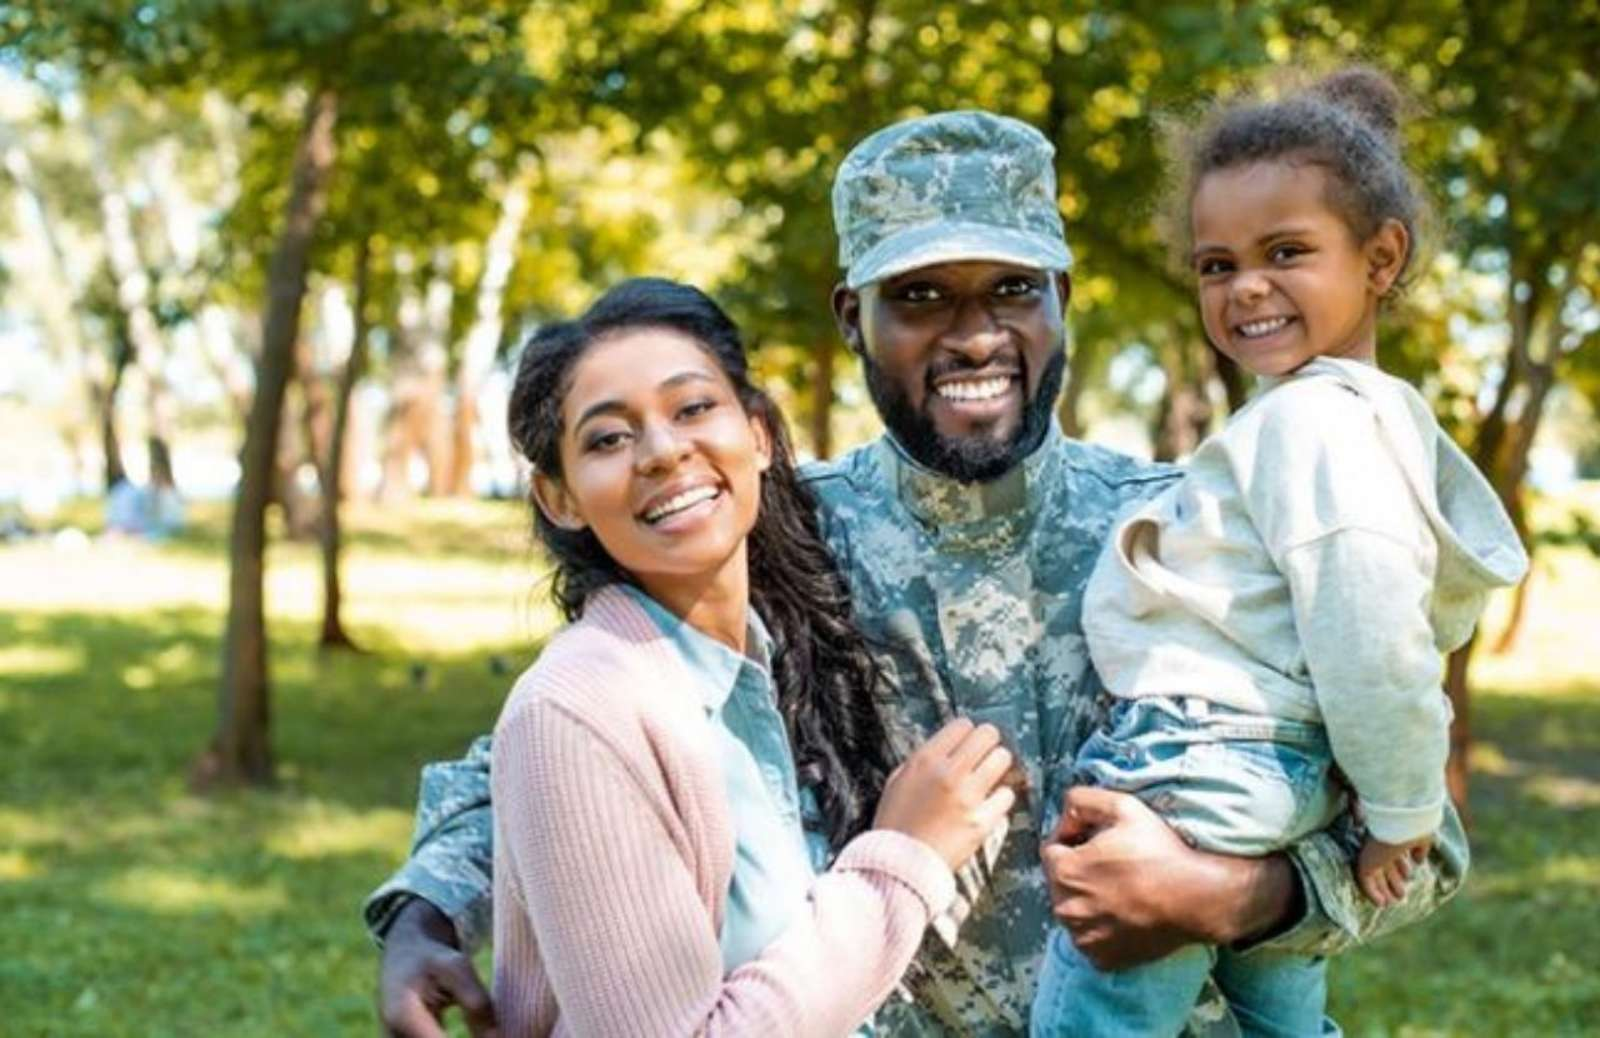 Man in miltary fatigues holding child with arm around spouse